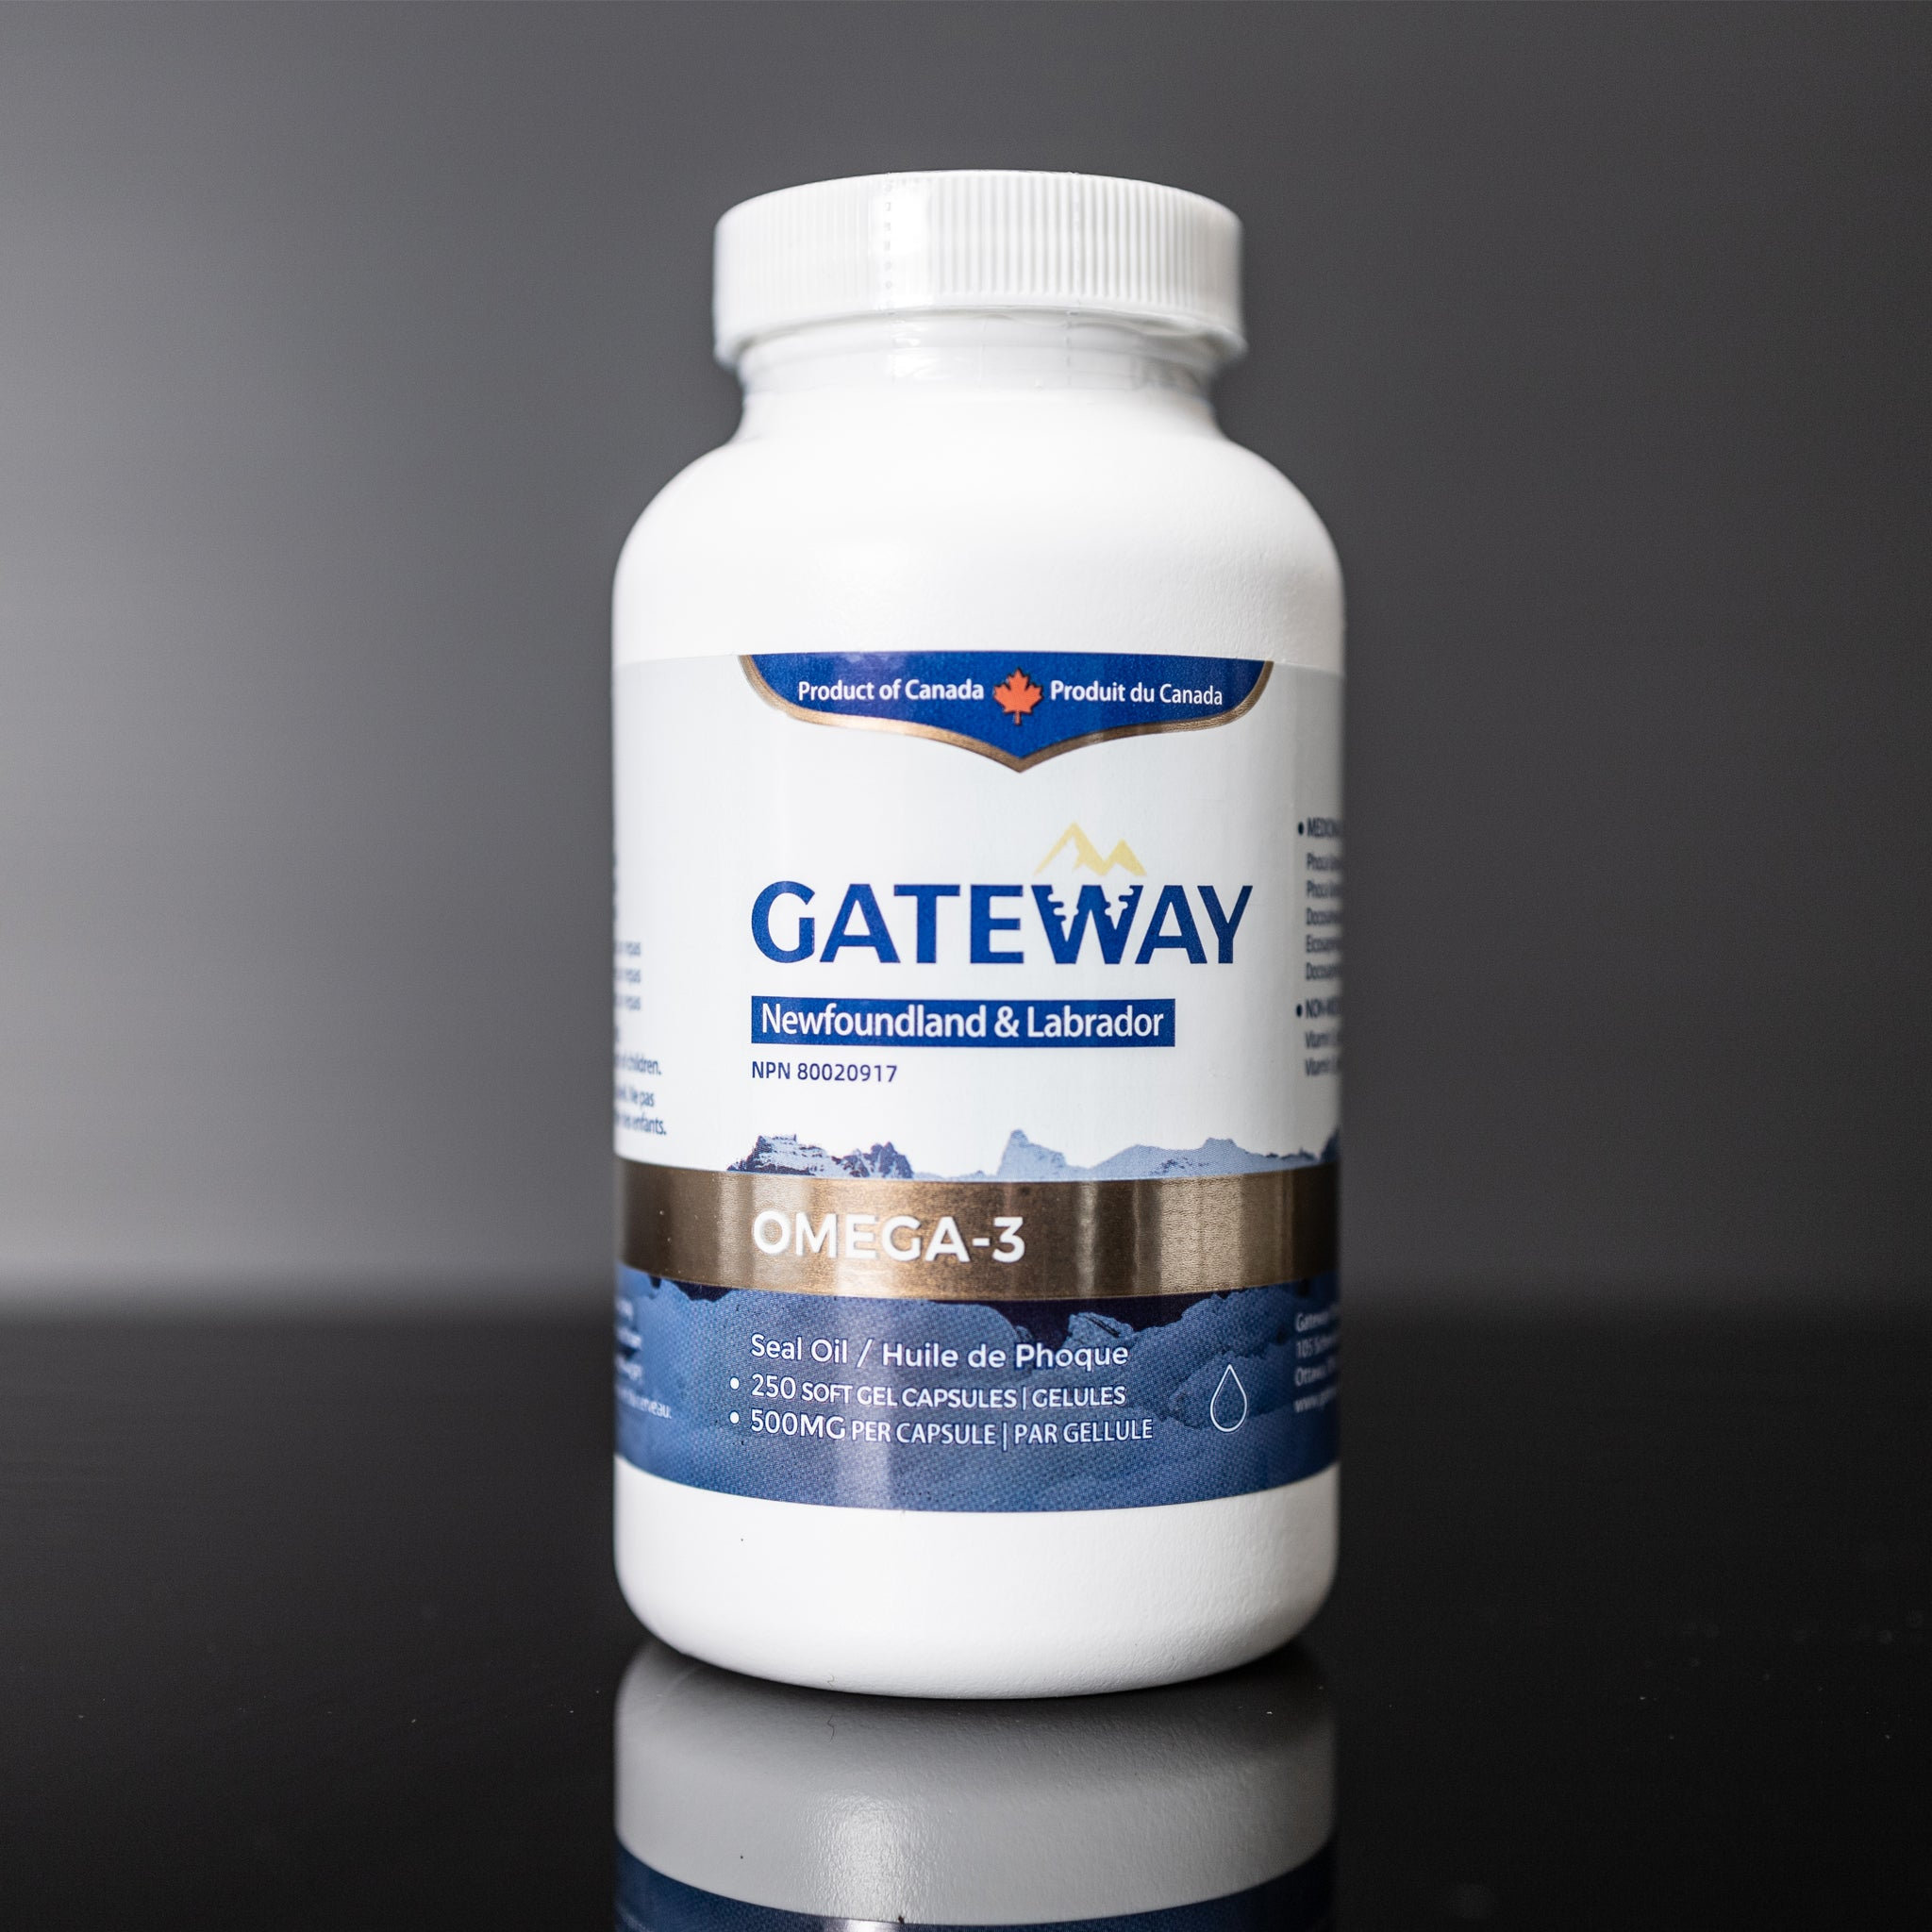 Gateway seal oil omega-3 (250 softgels)